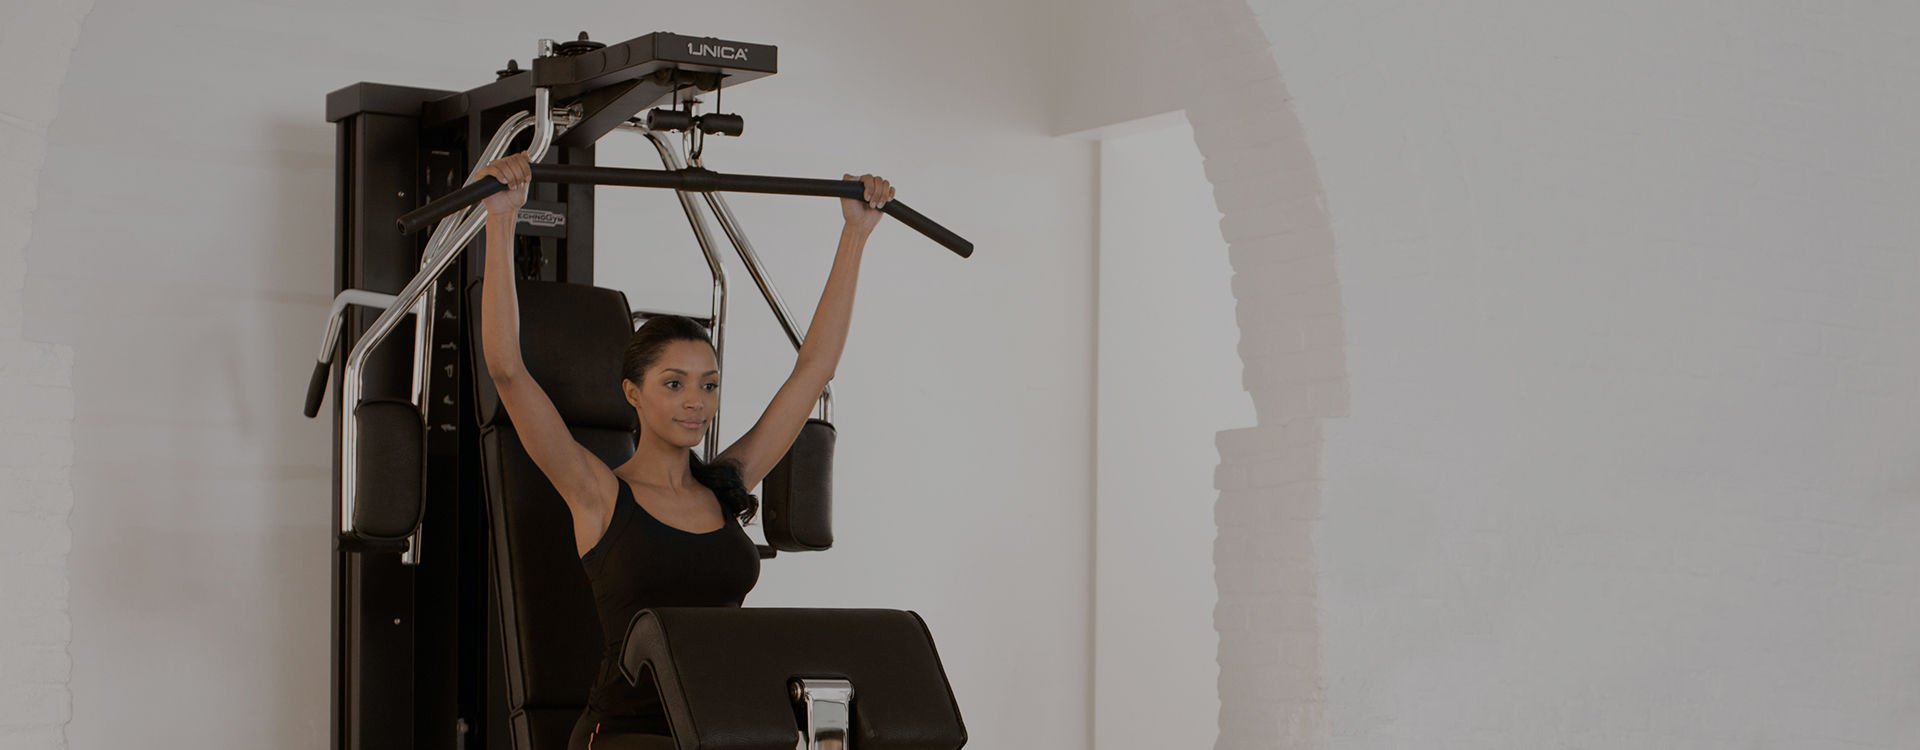 La gamme Home Fitness Strength